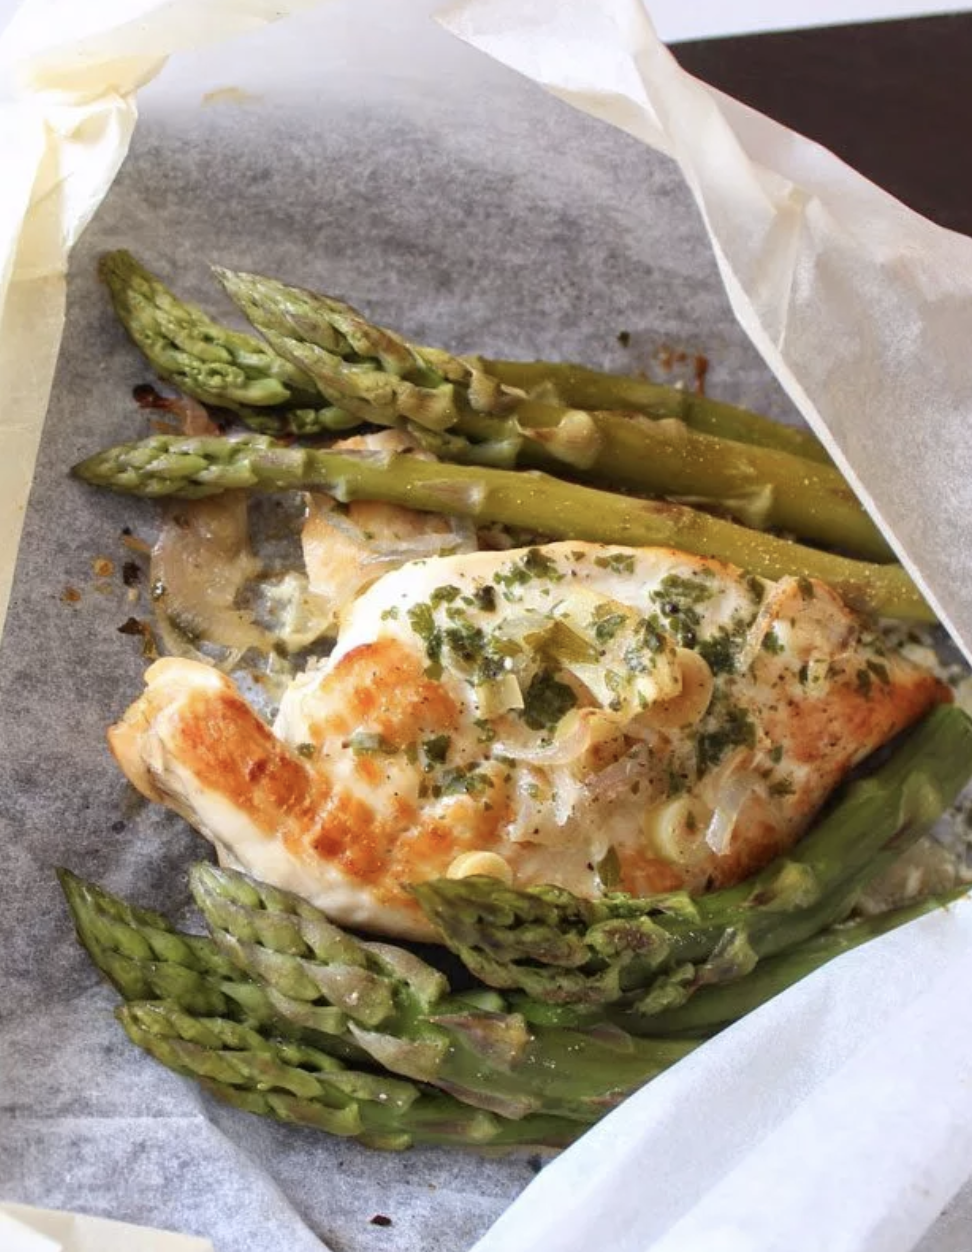 A parchment paper packet filled with asparagus stalks and a chicken breast.